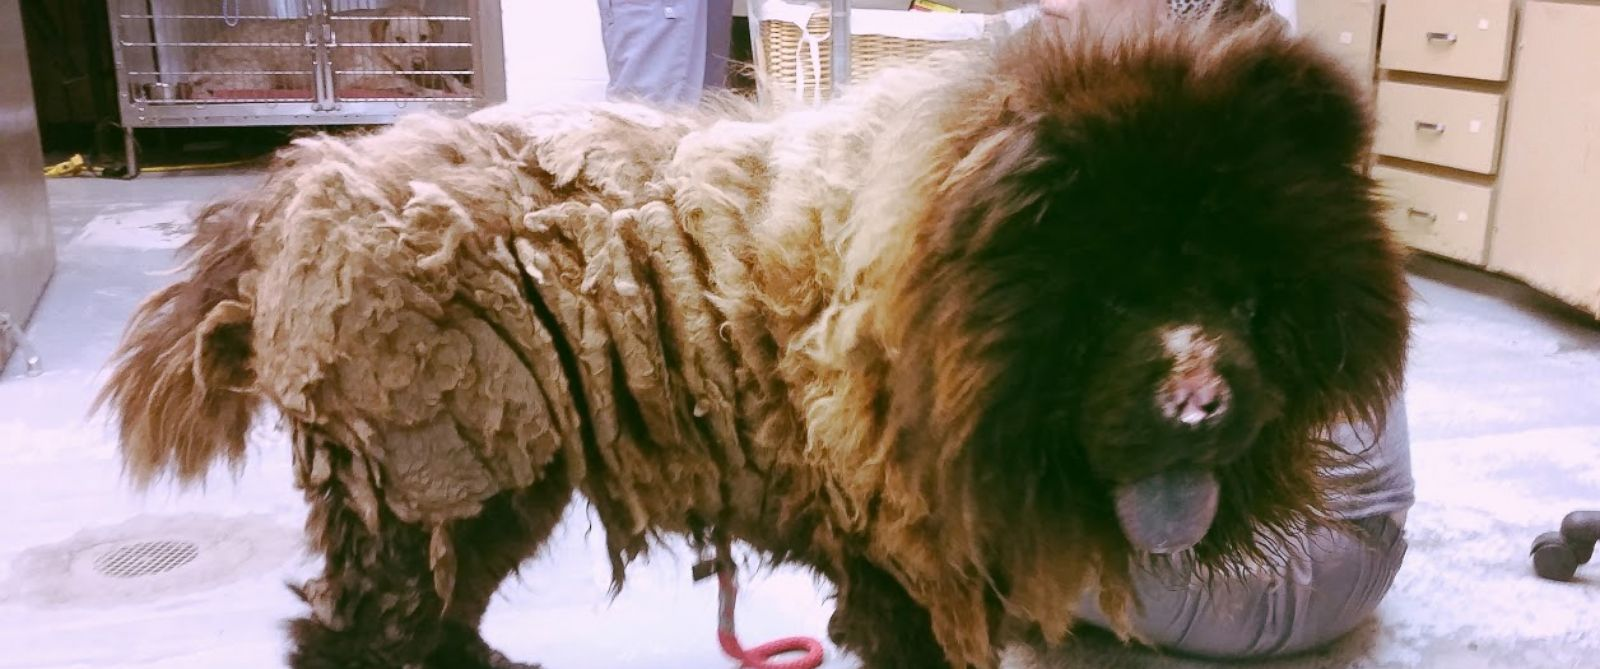 PHOTO: Harry was found with over five pounds of matted fur.